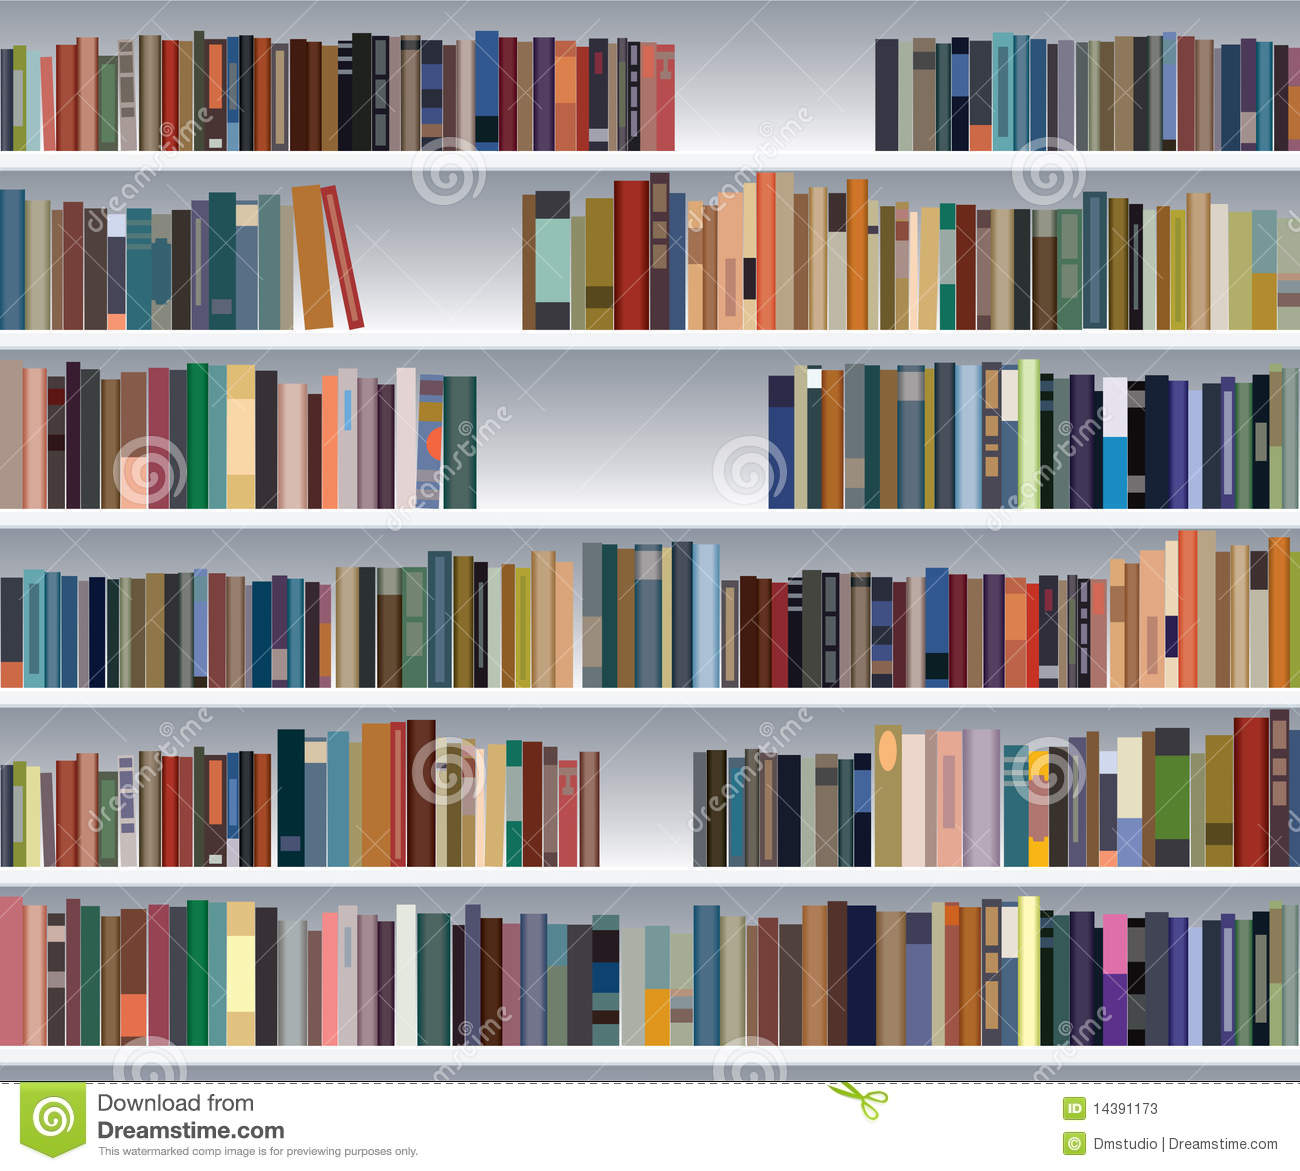 Modern Bookshelf Stock Photos - Image: 14391173